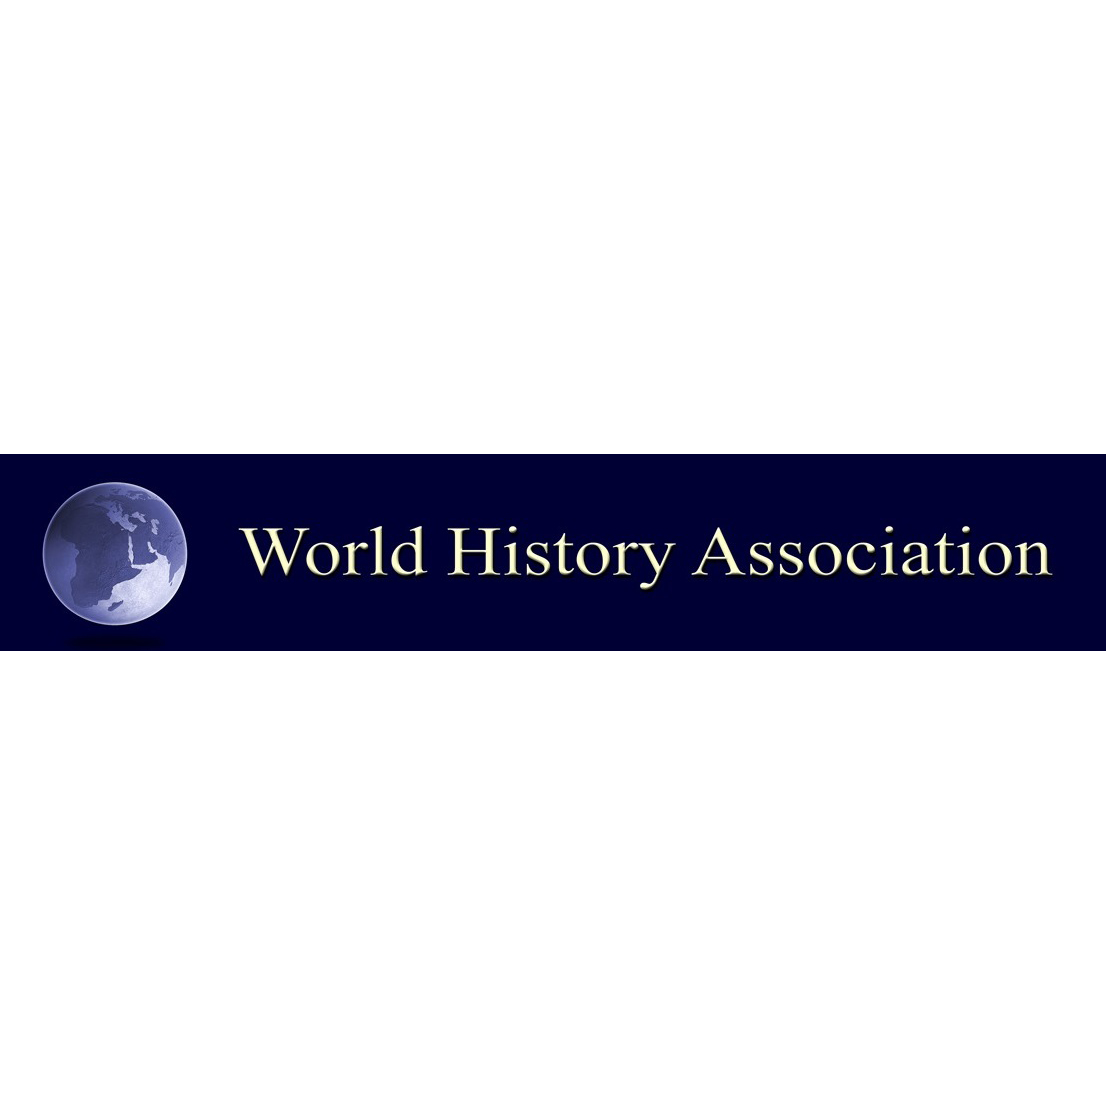 World History Association.jpg